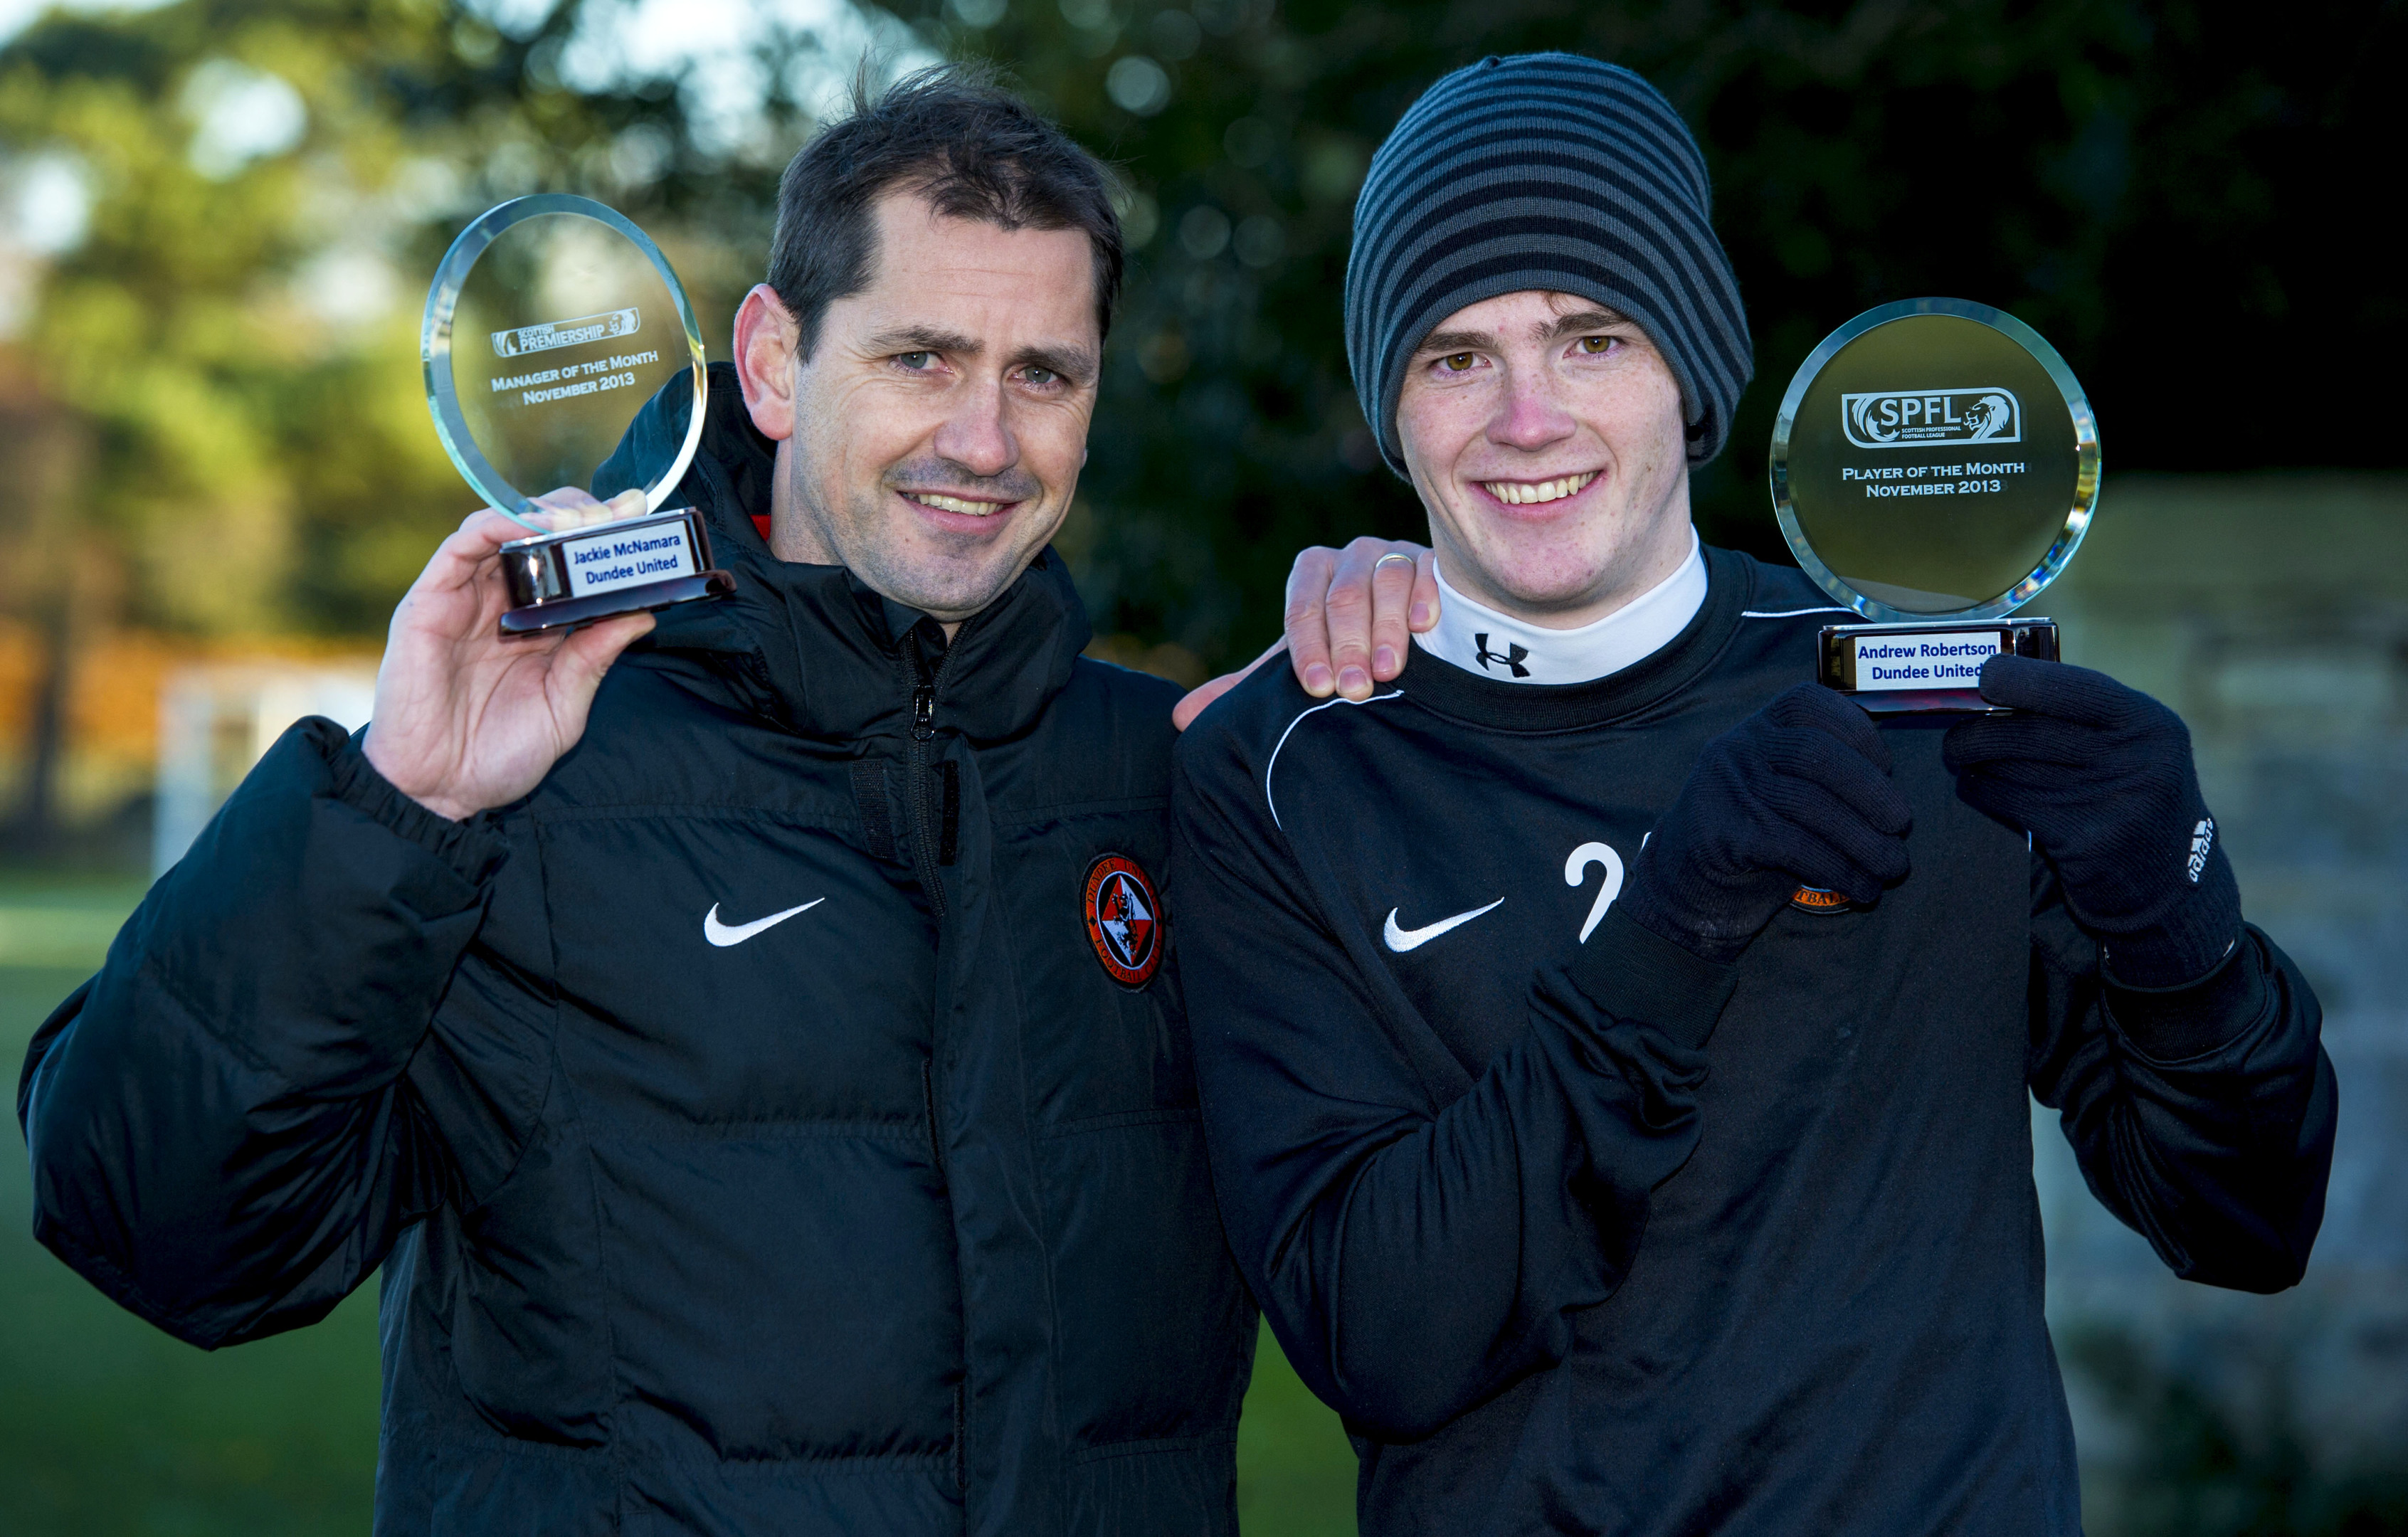 Jackie McNamara (left) with Andrew Robertson after they were awarded the SPFL Scottish Championship Manager and Player of the Month awards respectively in December 2013 while at Dundee United. Robertson is a rare example of a Scottish player who has made a success of life in England.